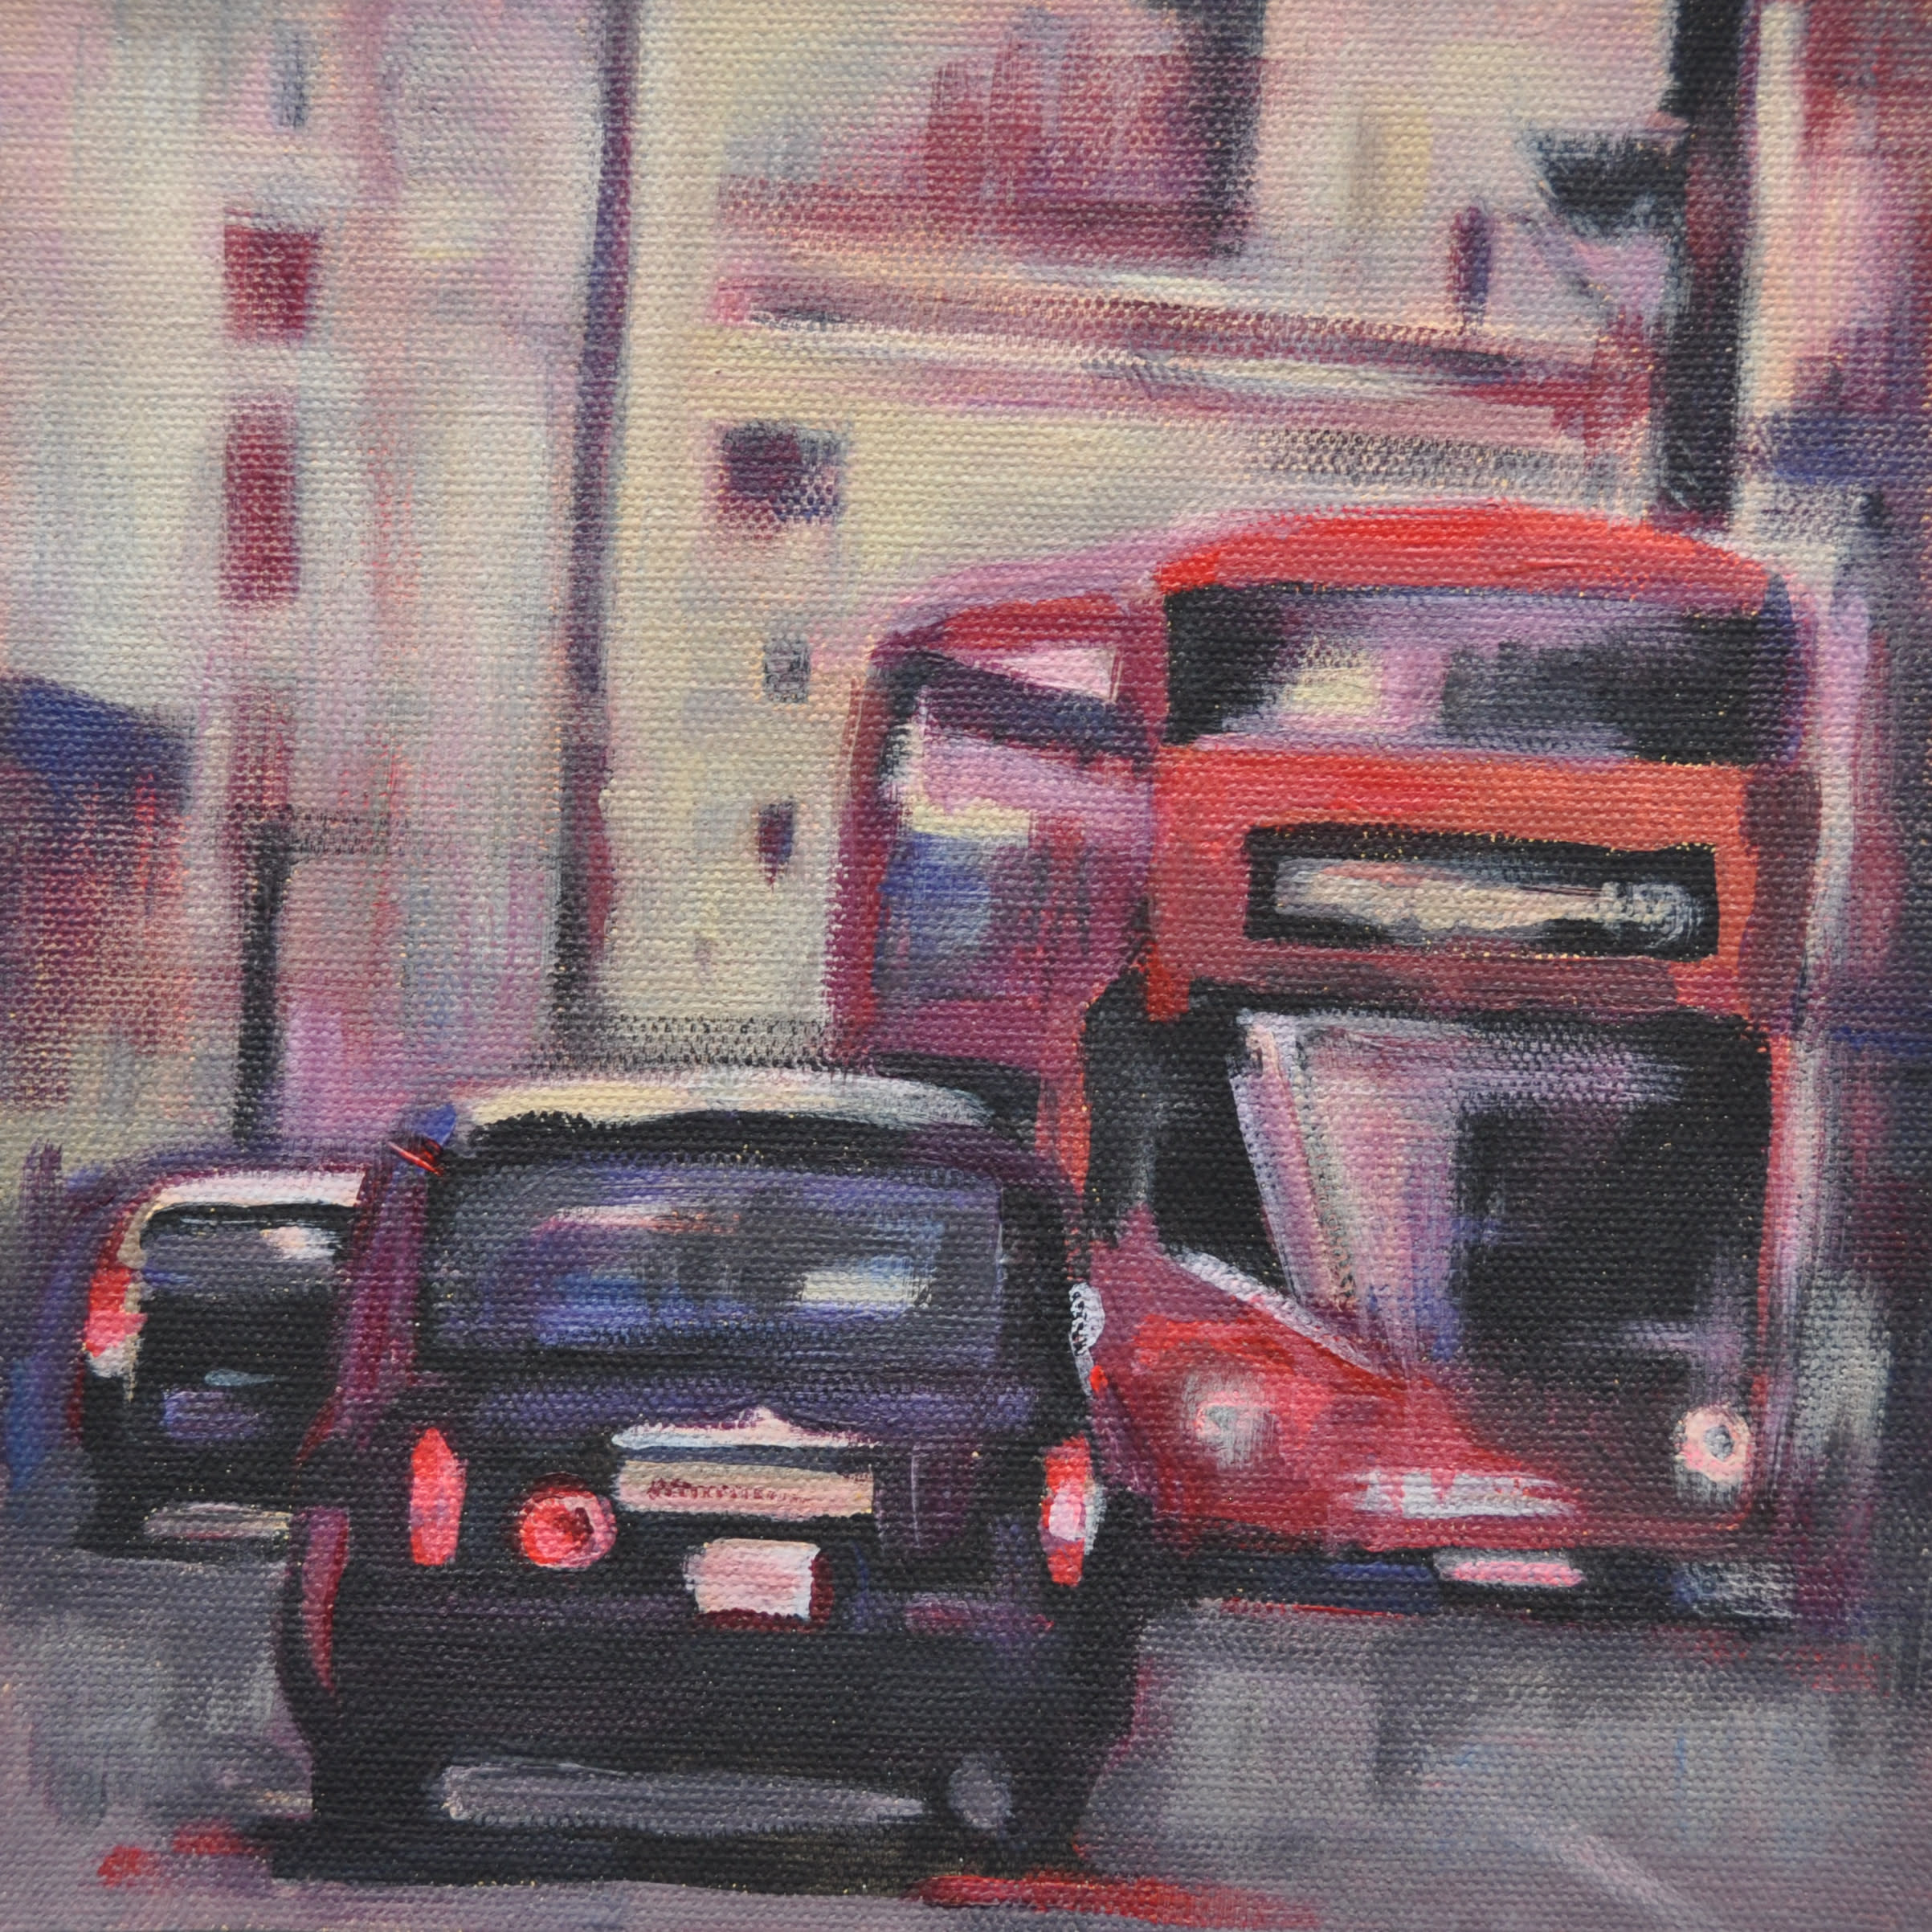 19x19 the streets of london by steph fonteyn pgyfwq